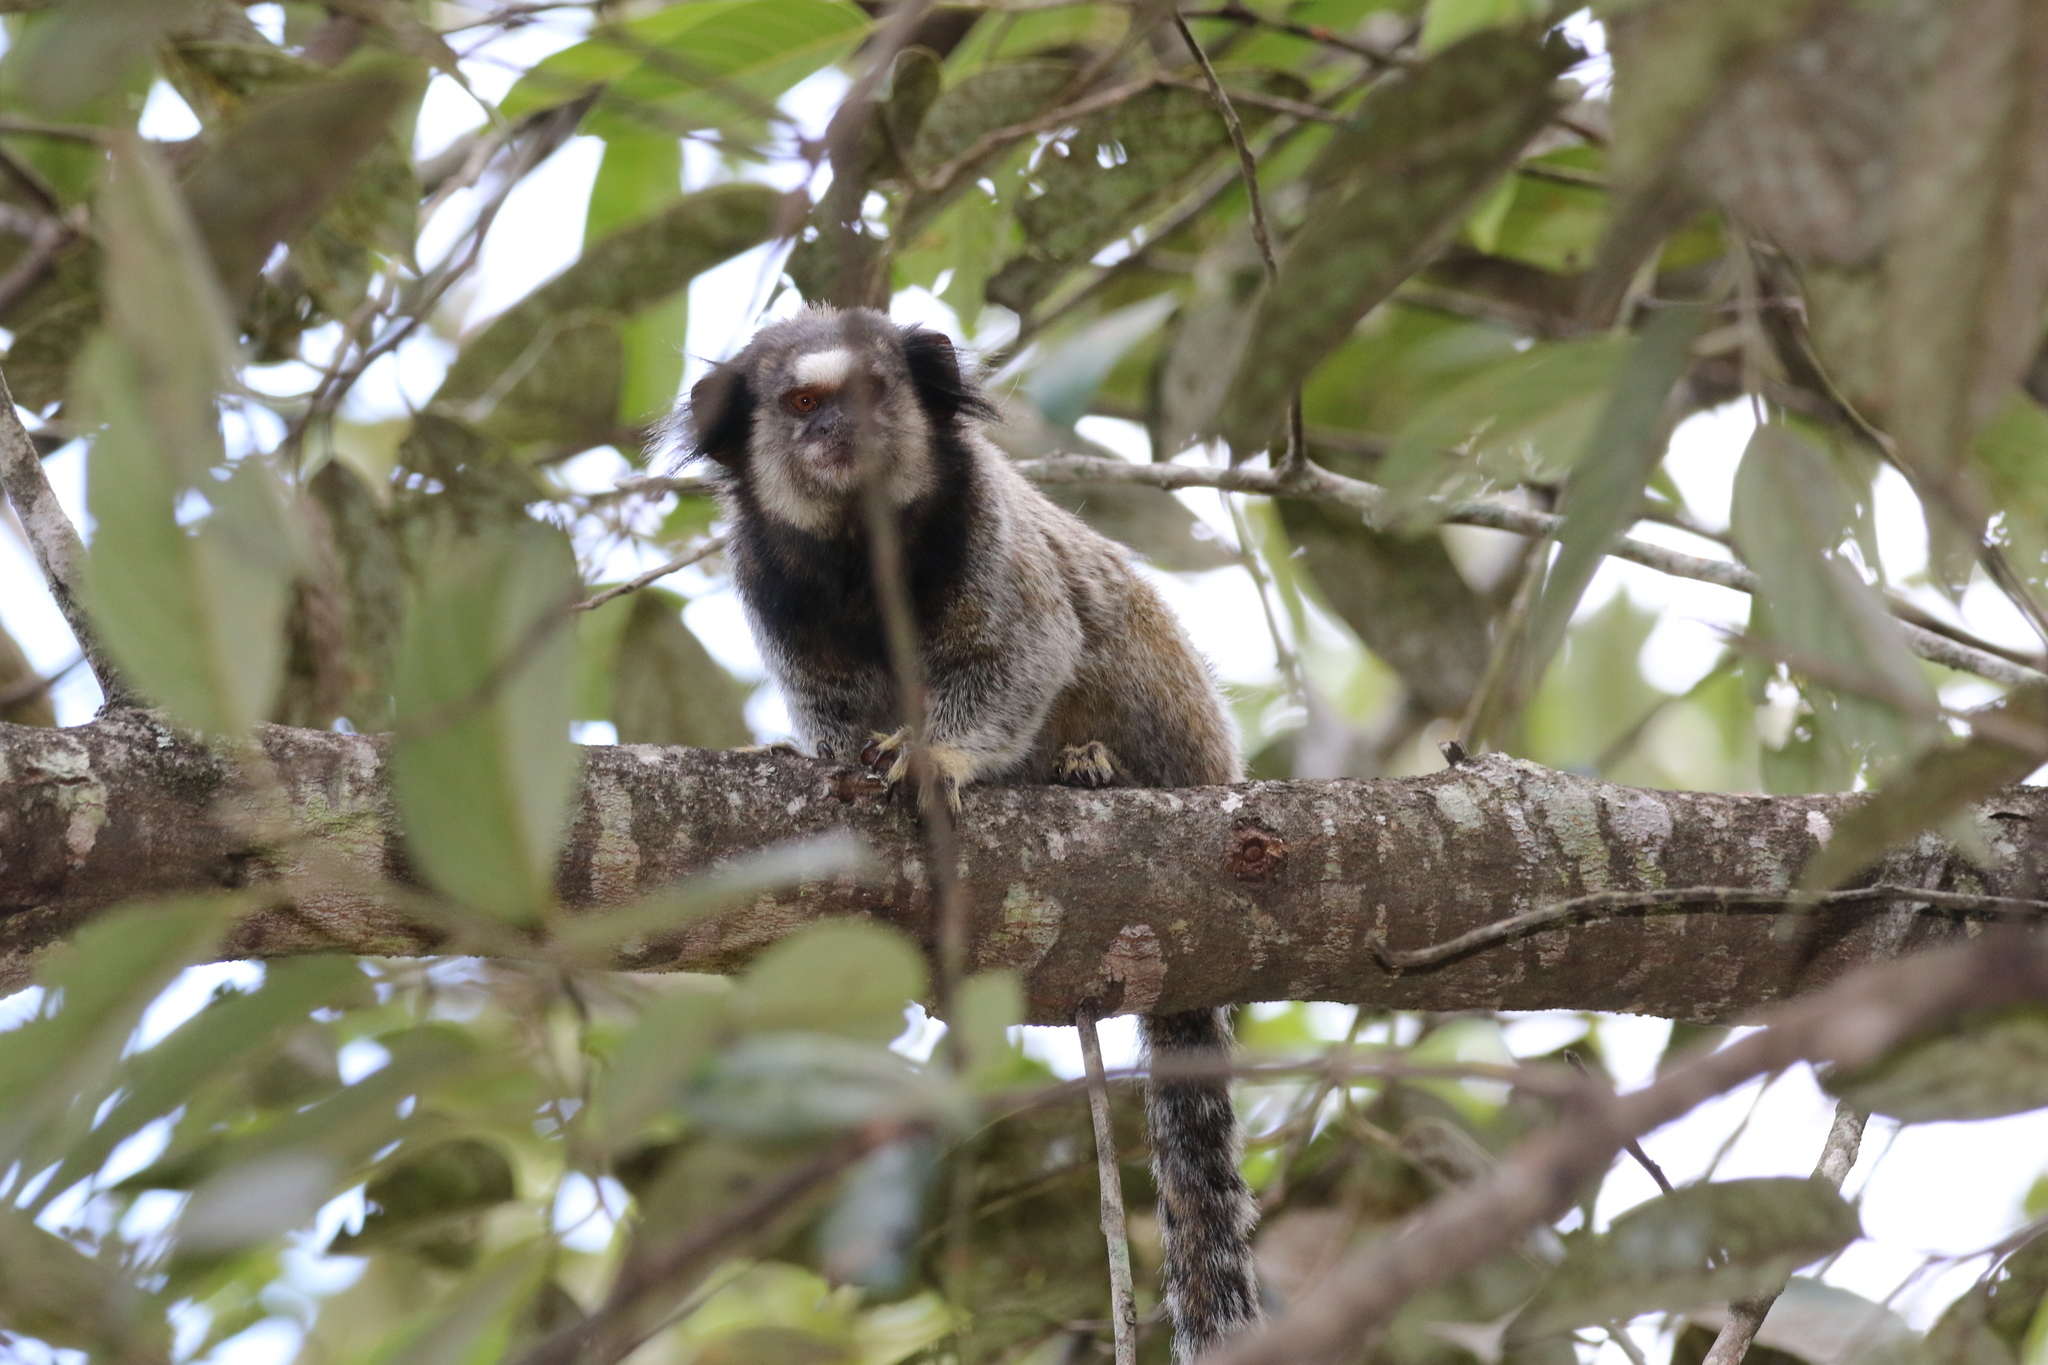 Image of Black-pencilled marmoset